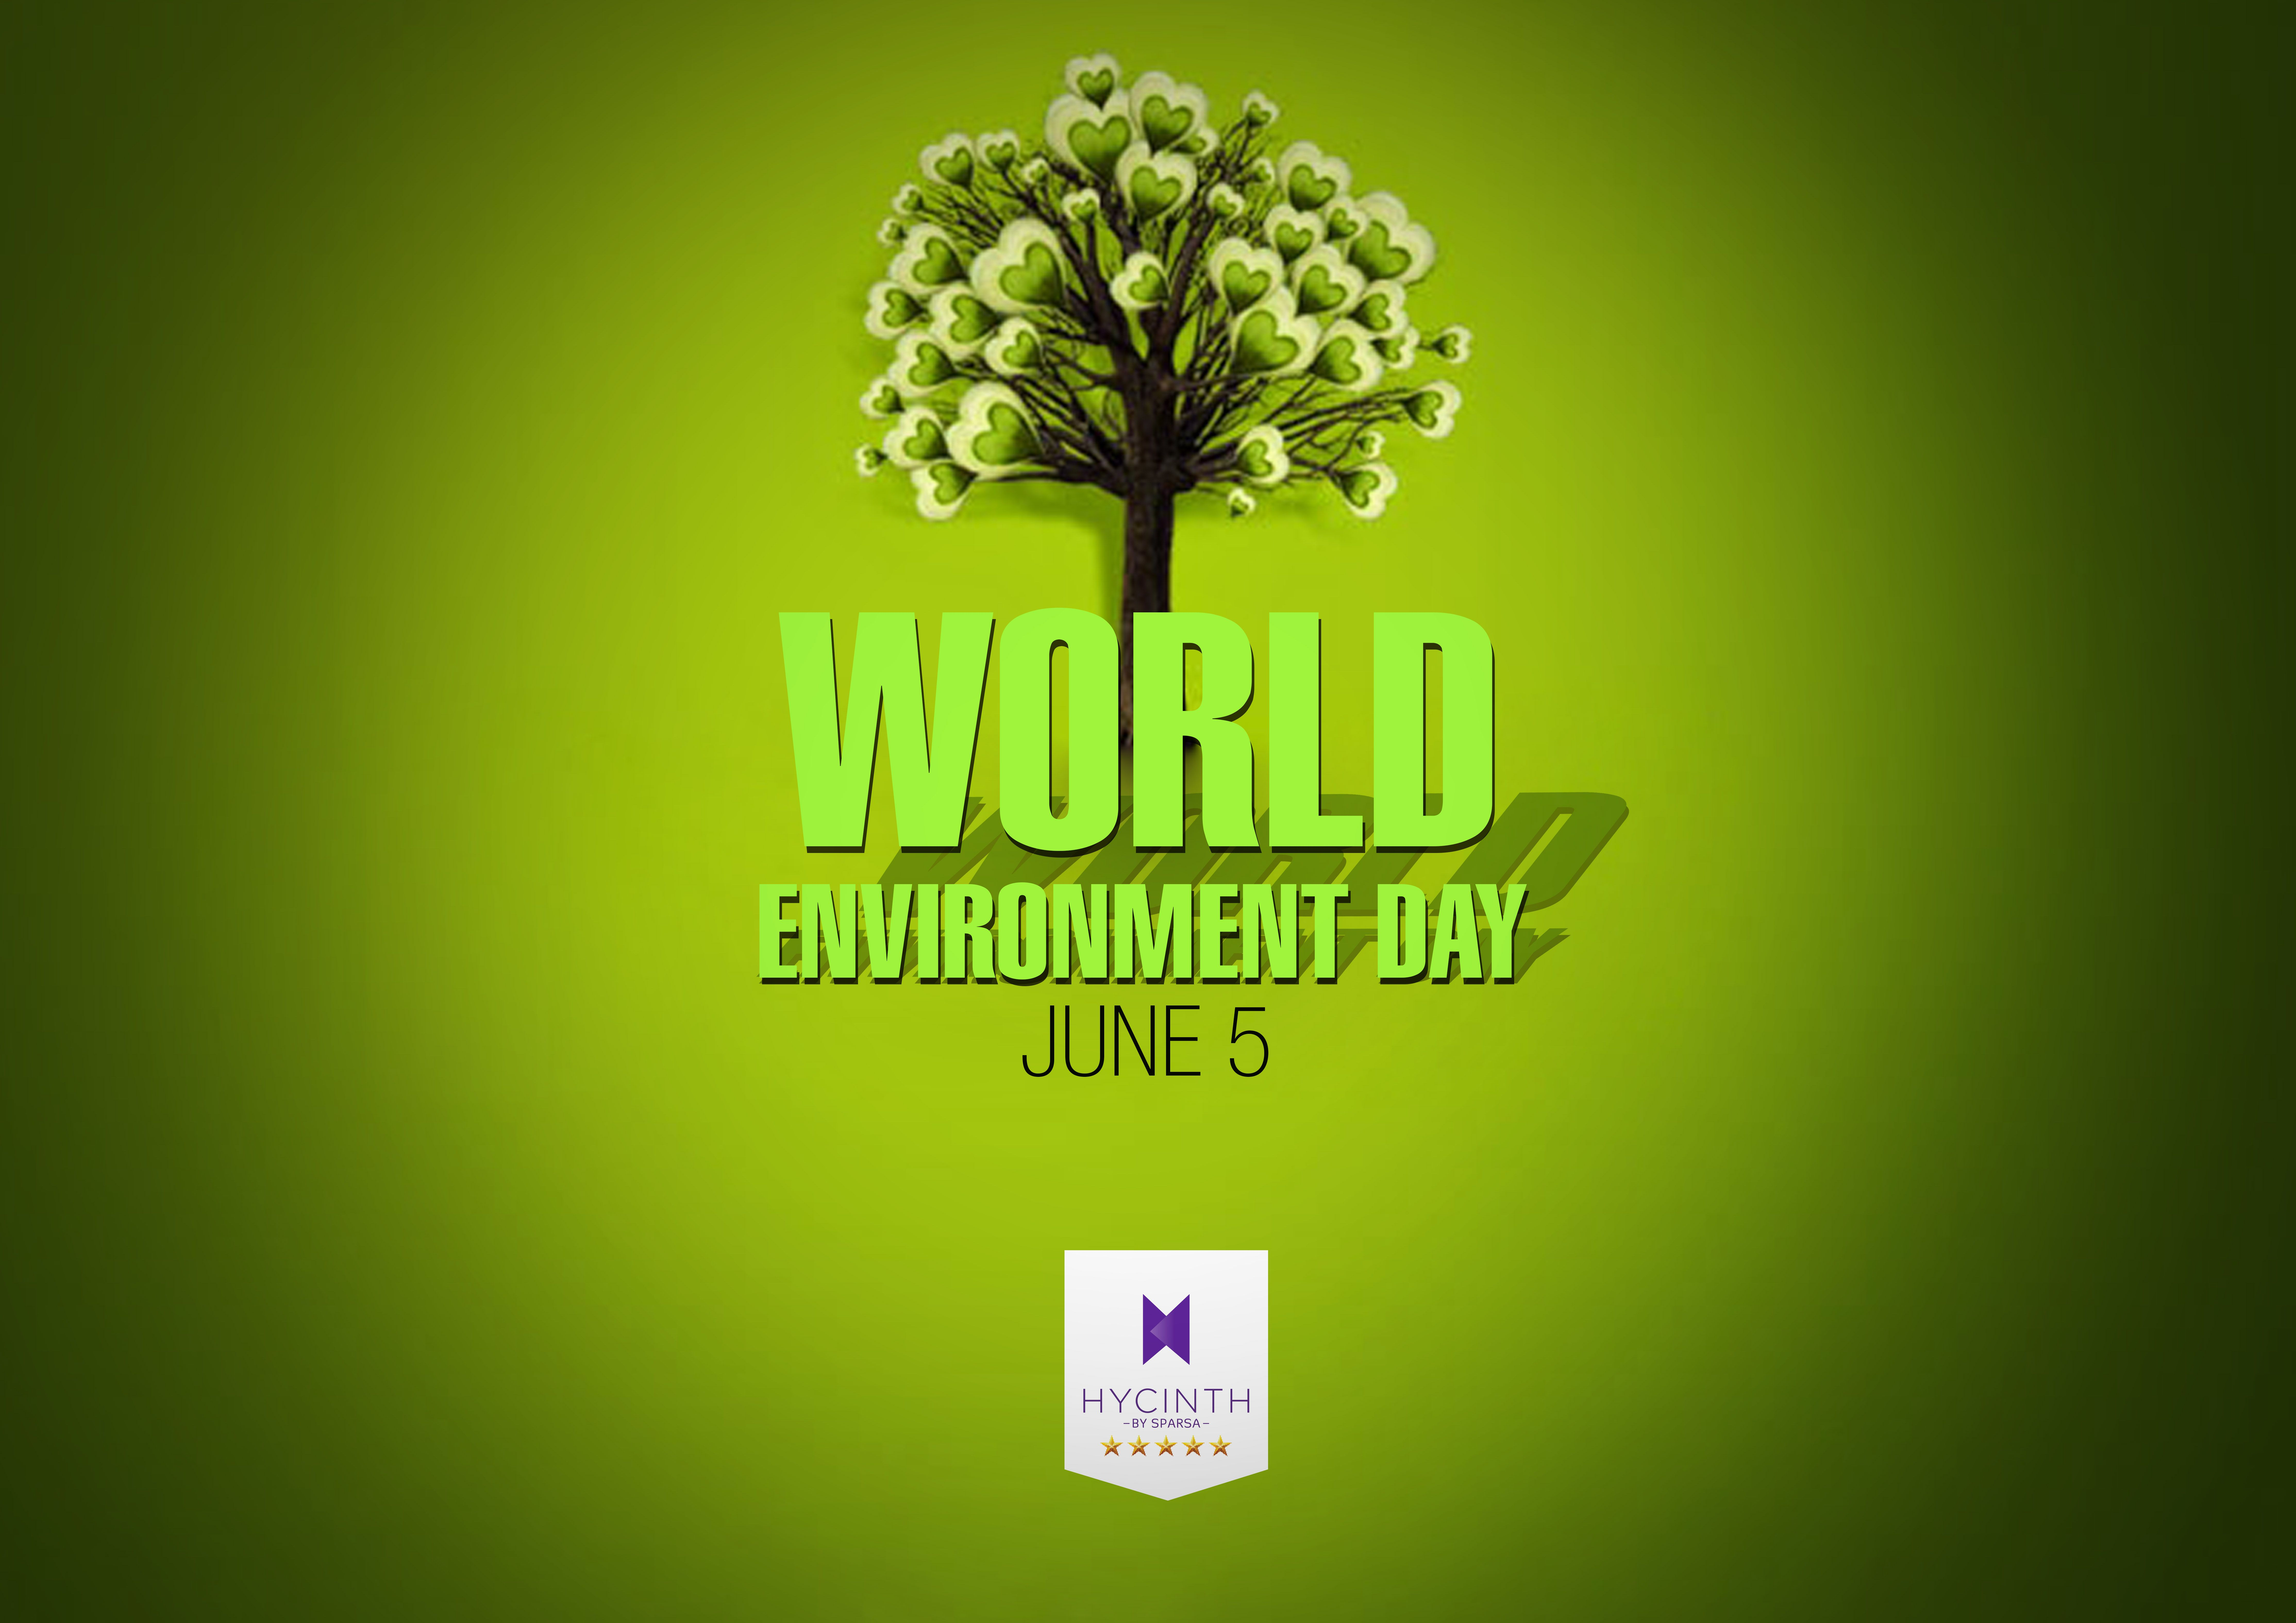 World Environment Day Motivates Us To Take Positive